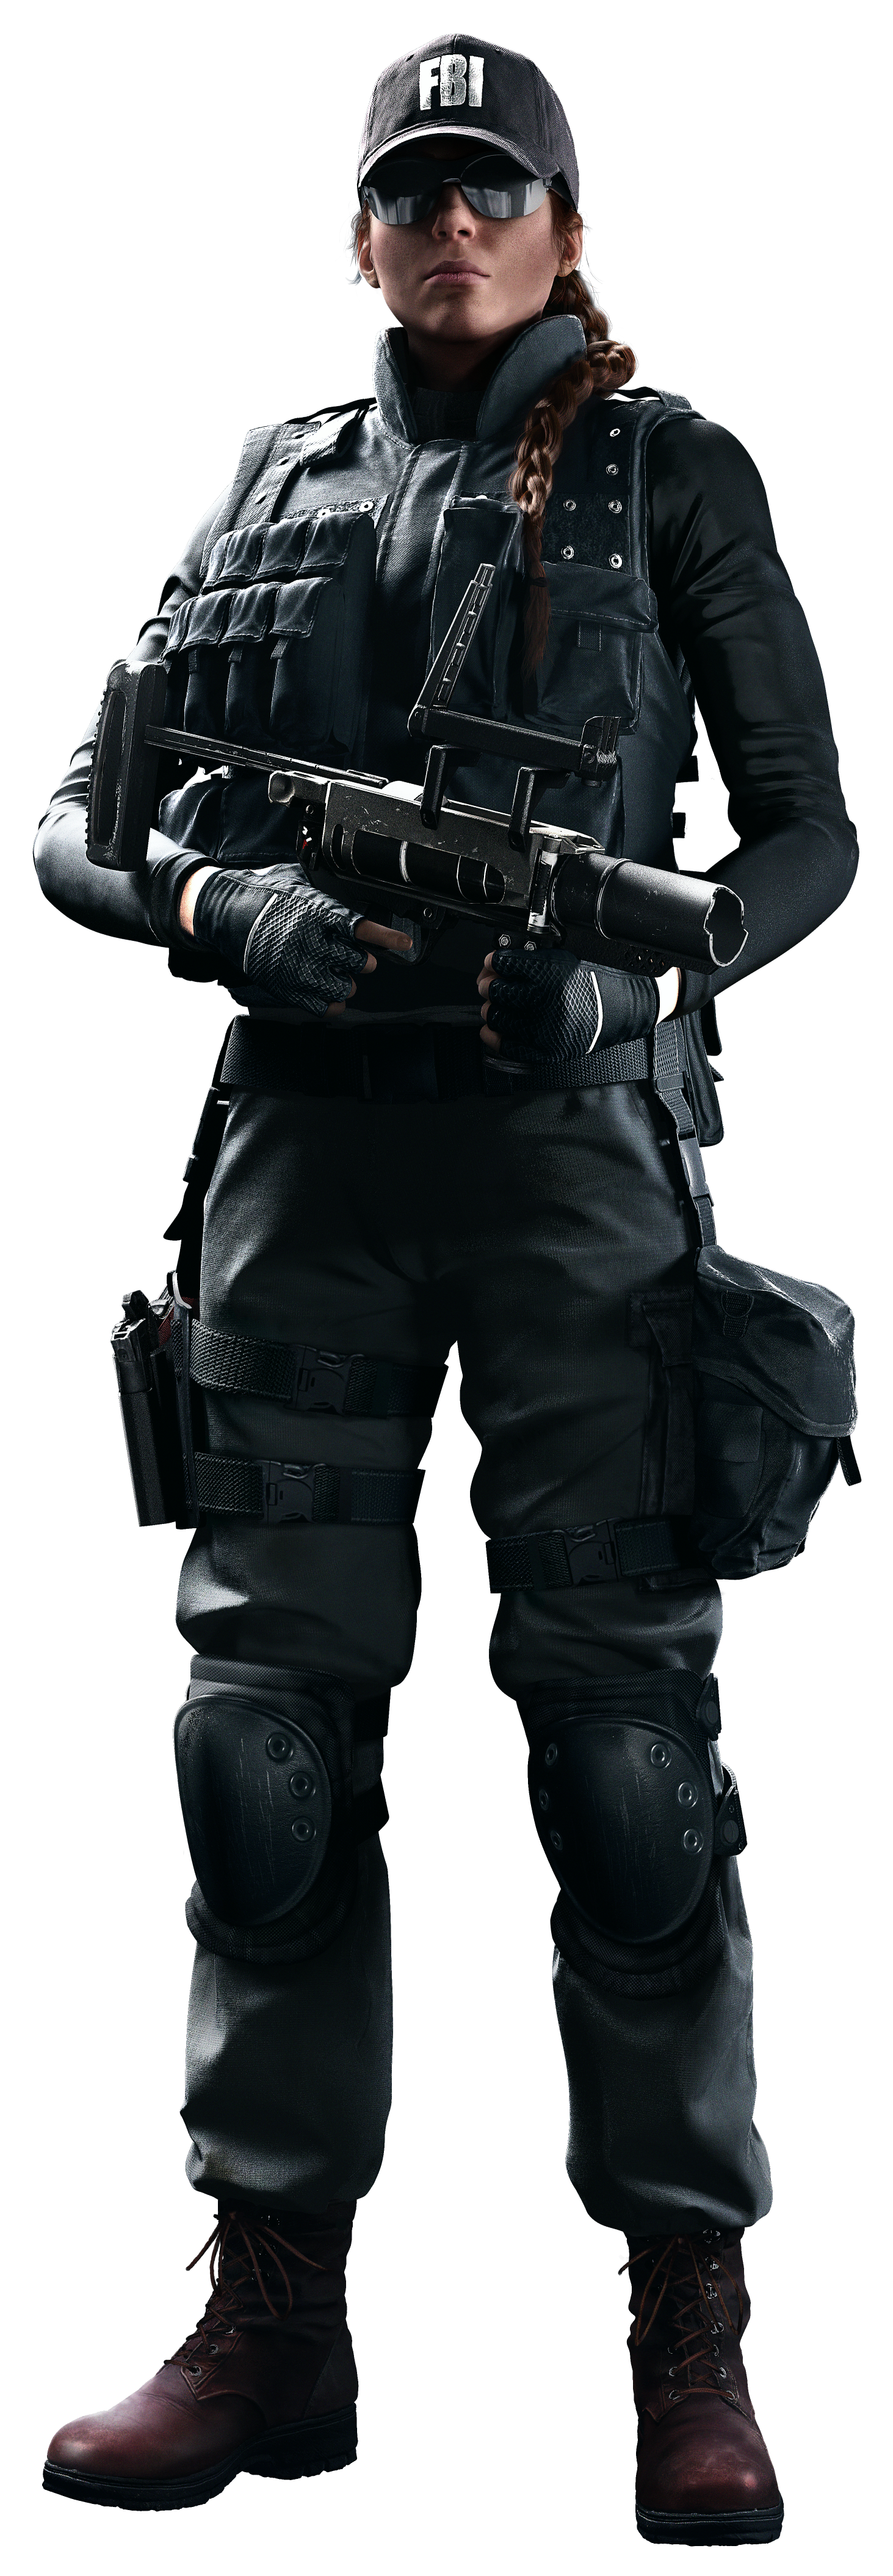 Category:Operators | Rainbow Six Wiki | FANDOM powered by Wikia